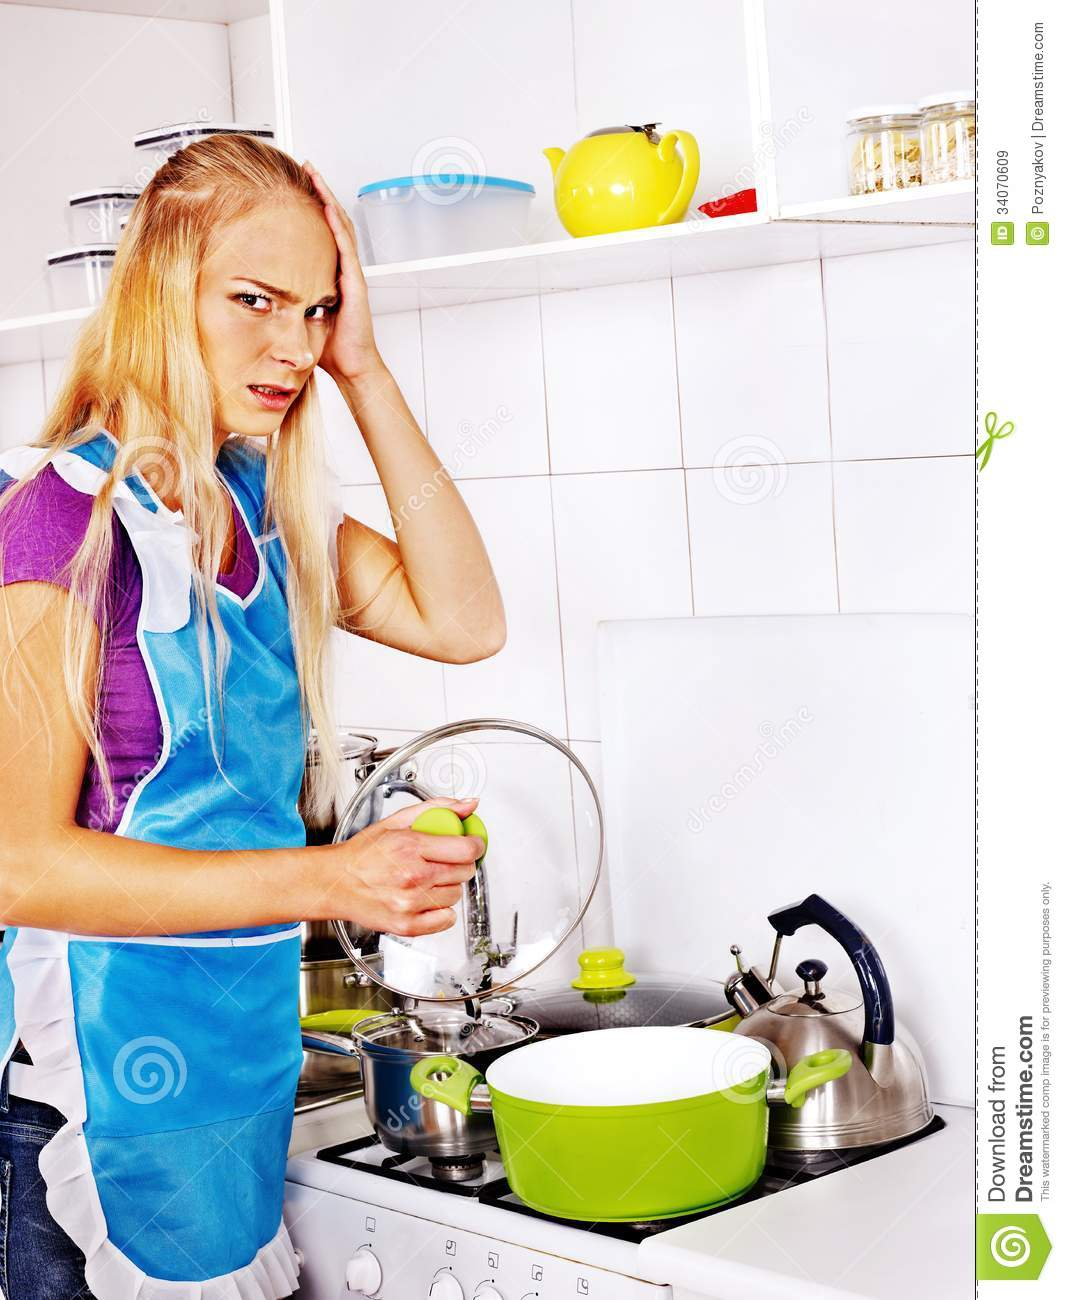 Women Kitchen: Unhappy Tired Woman At Kitchen. Stock Image